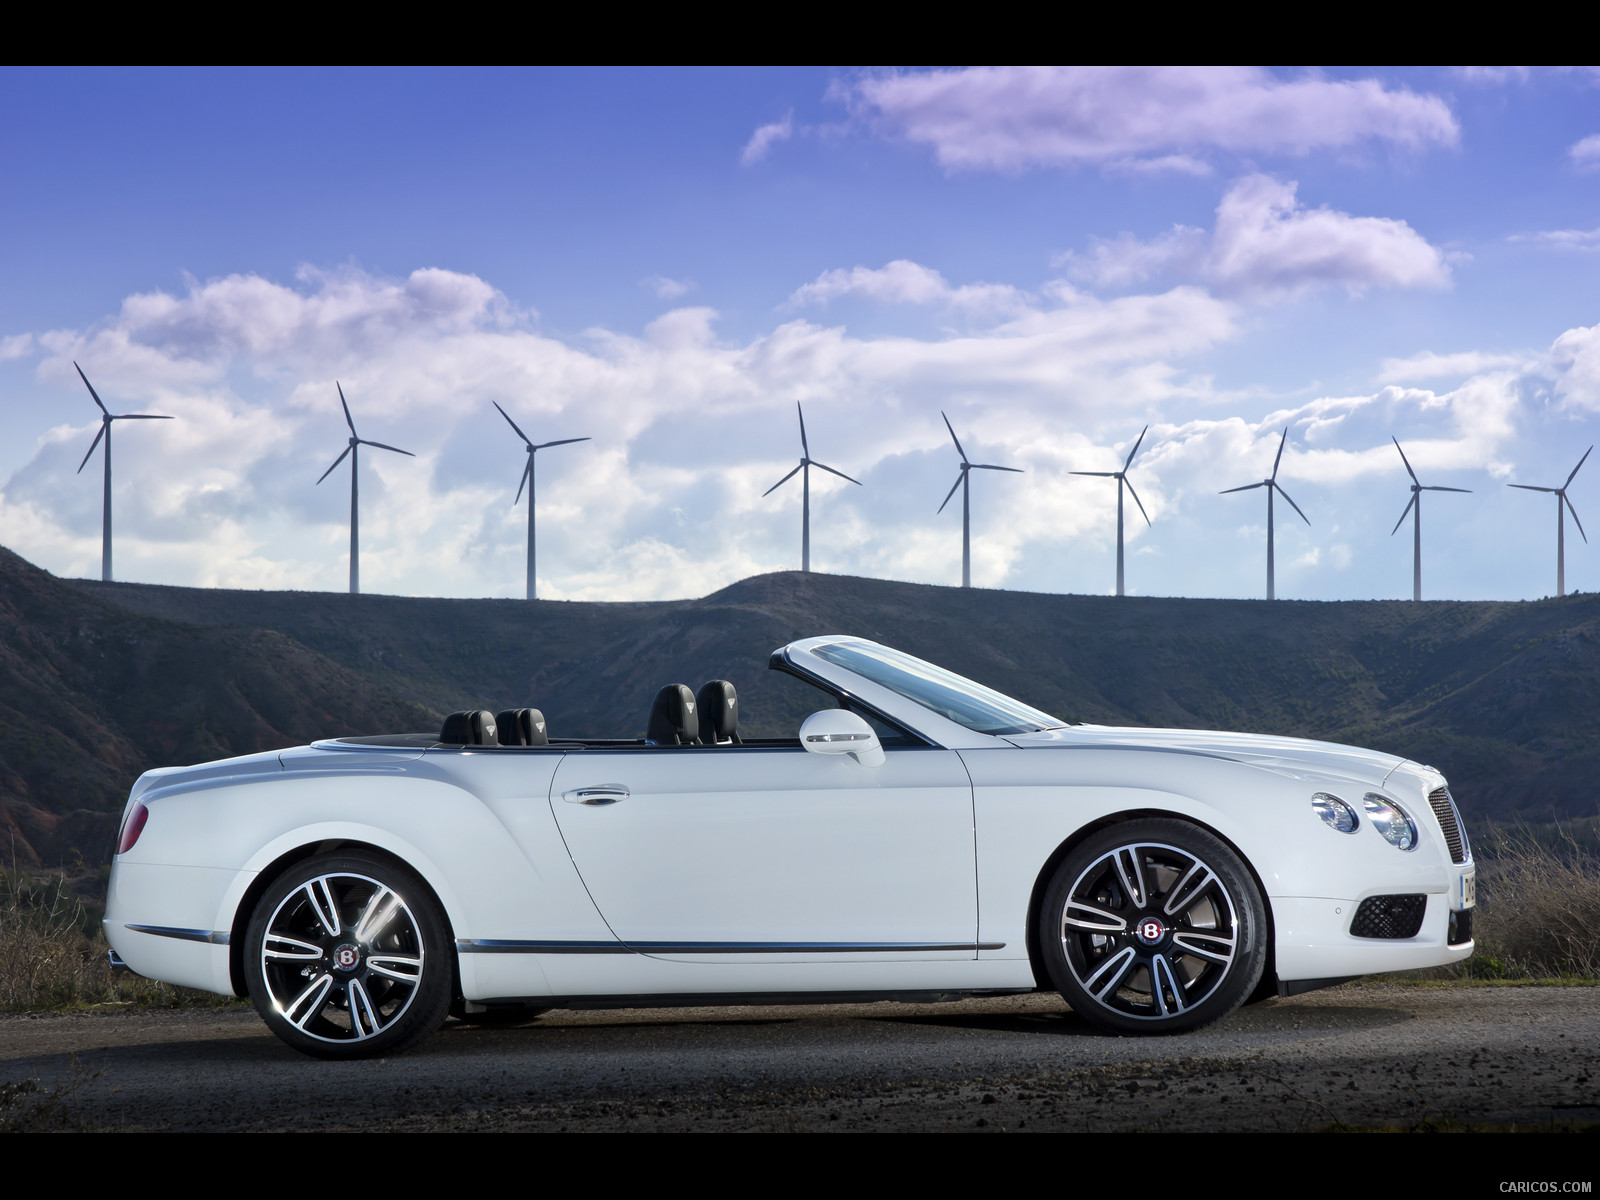 2013 Bentley Continental Gtc Image 13